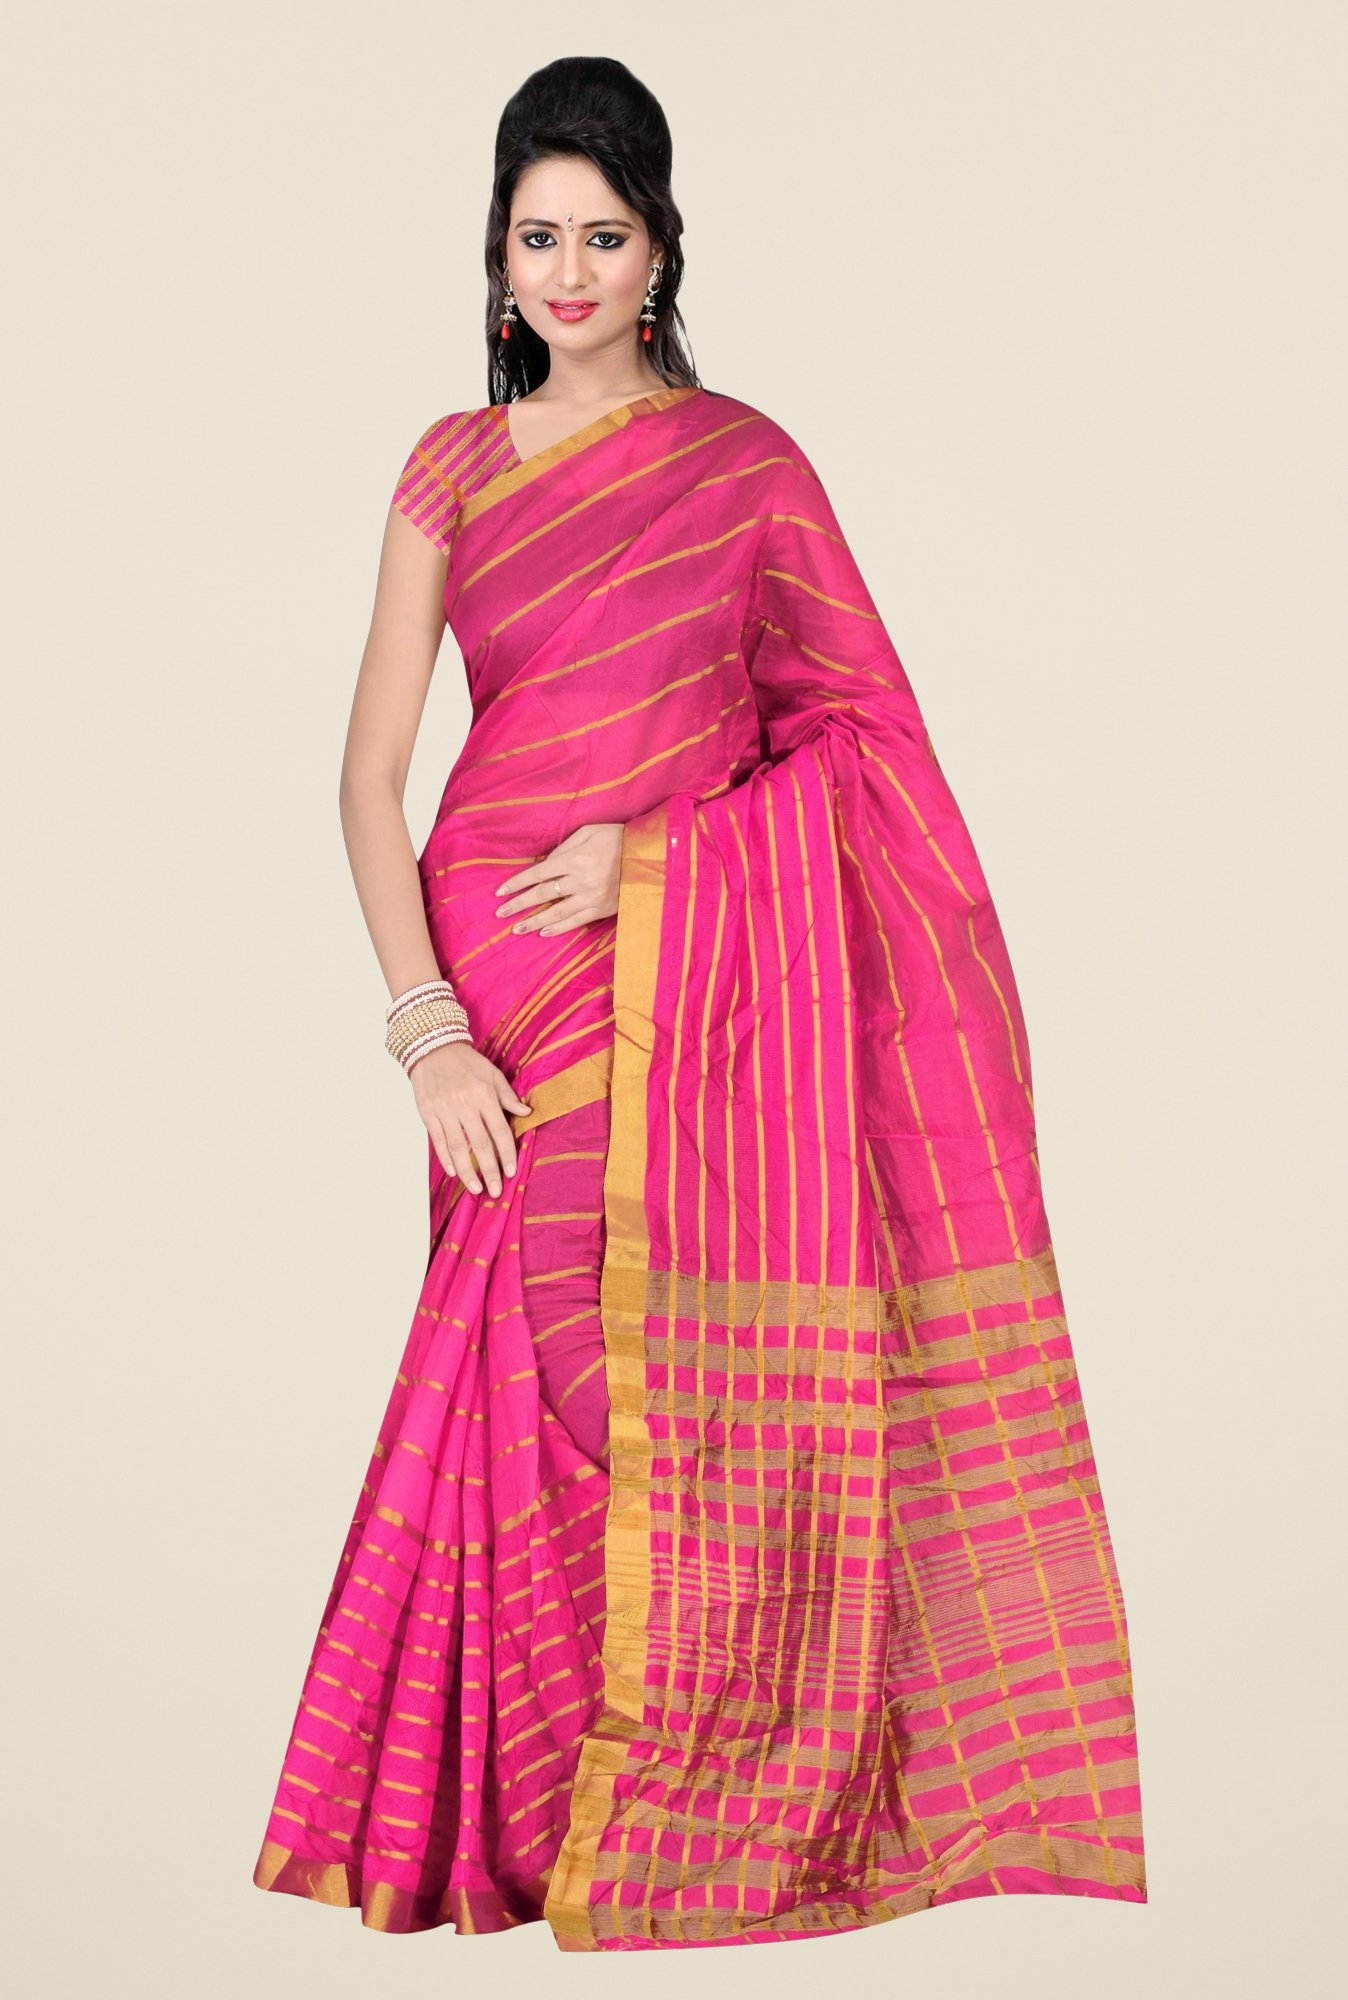 Triveni Pink Striped Silk Saree